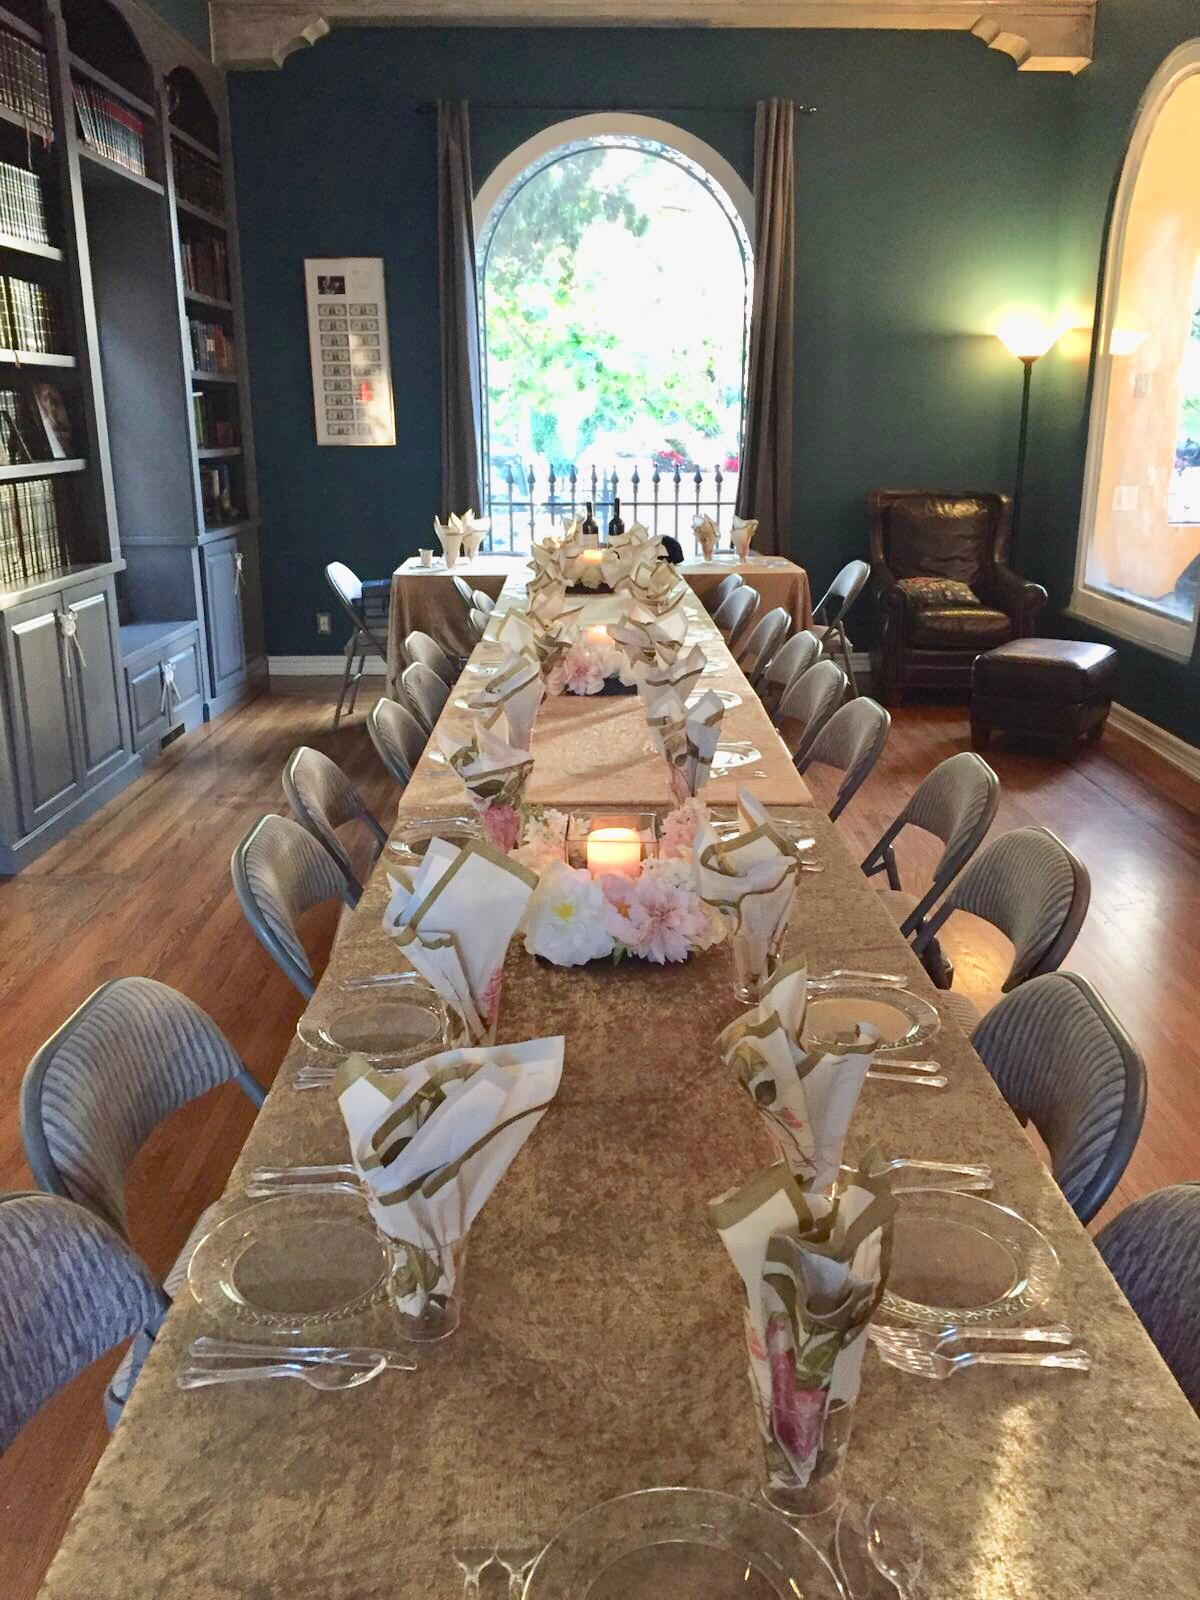 Dinner for 30 Strangers- 40 to 55 years